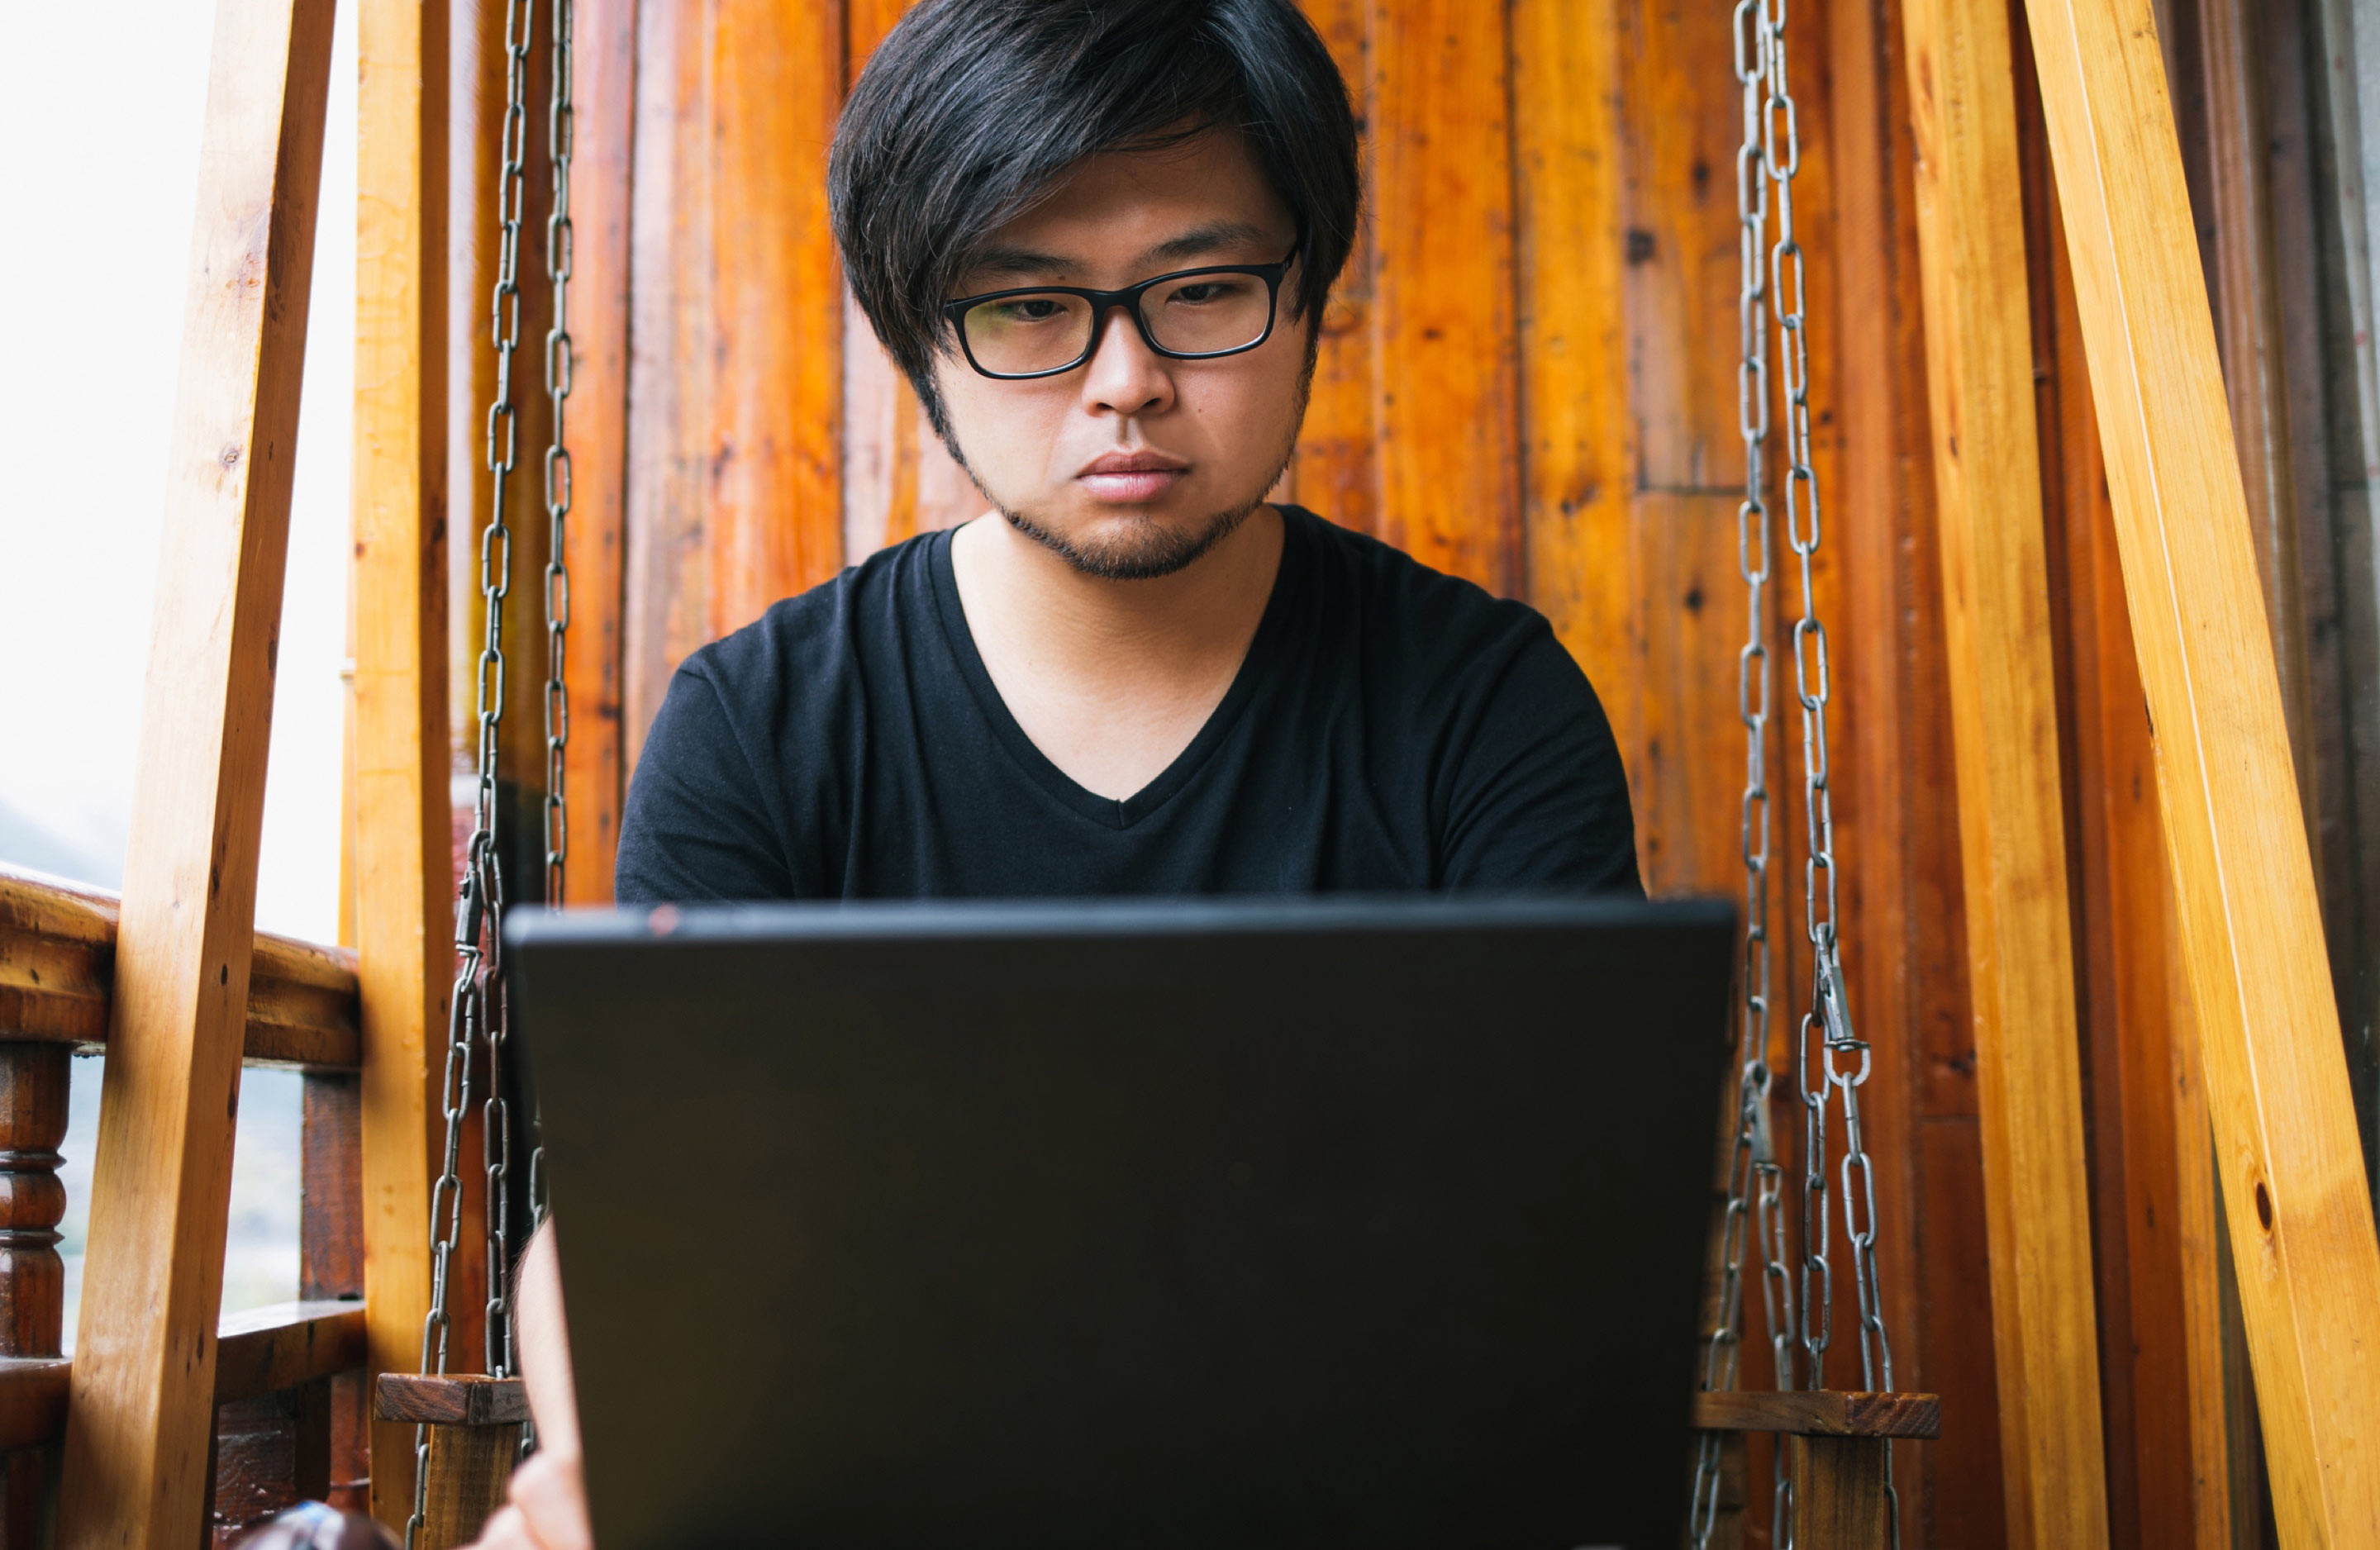 Asian man looking at laptop